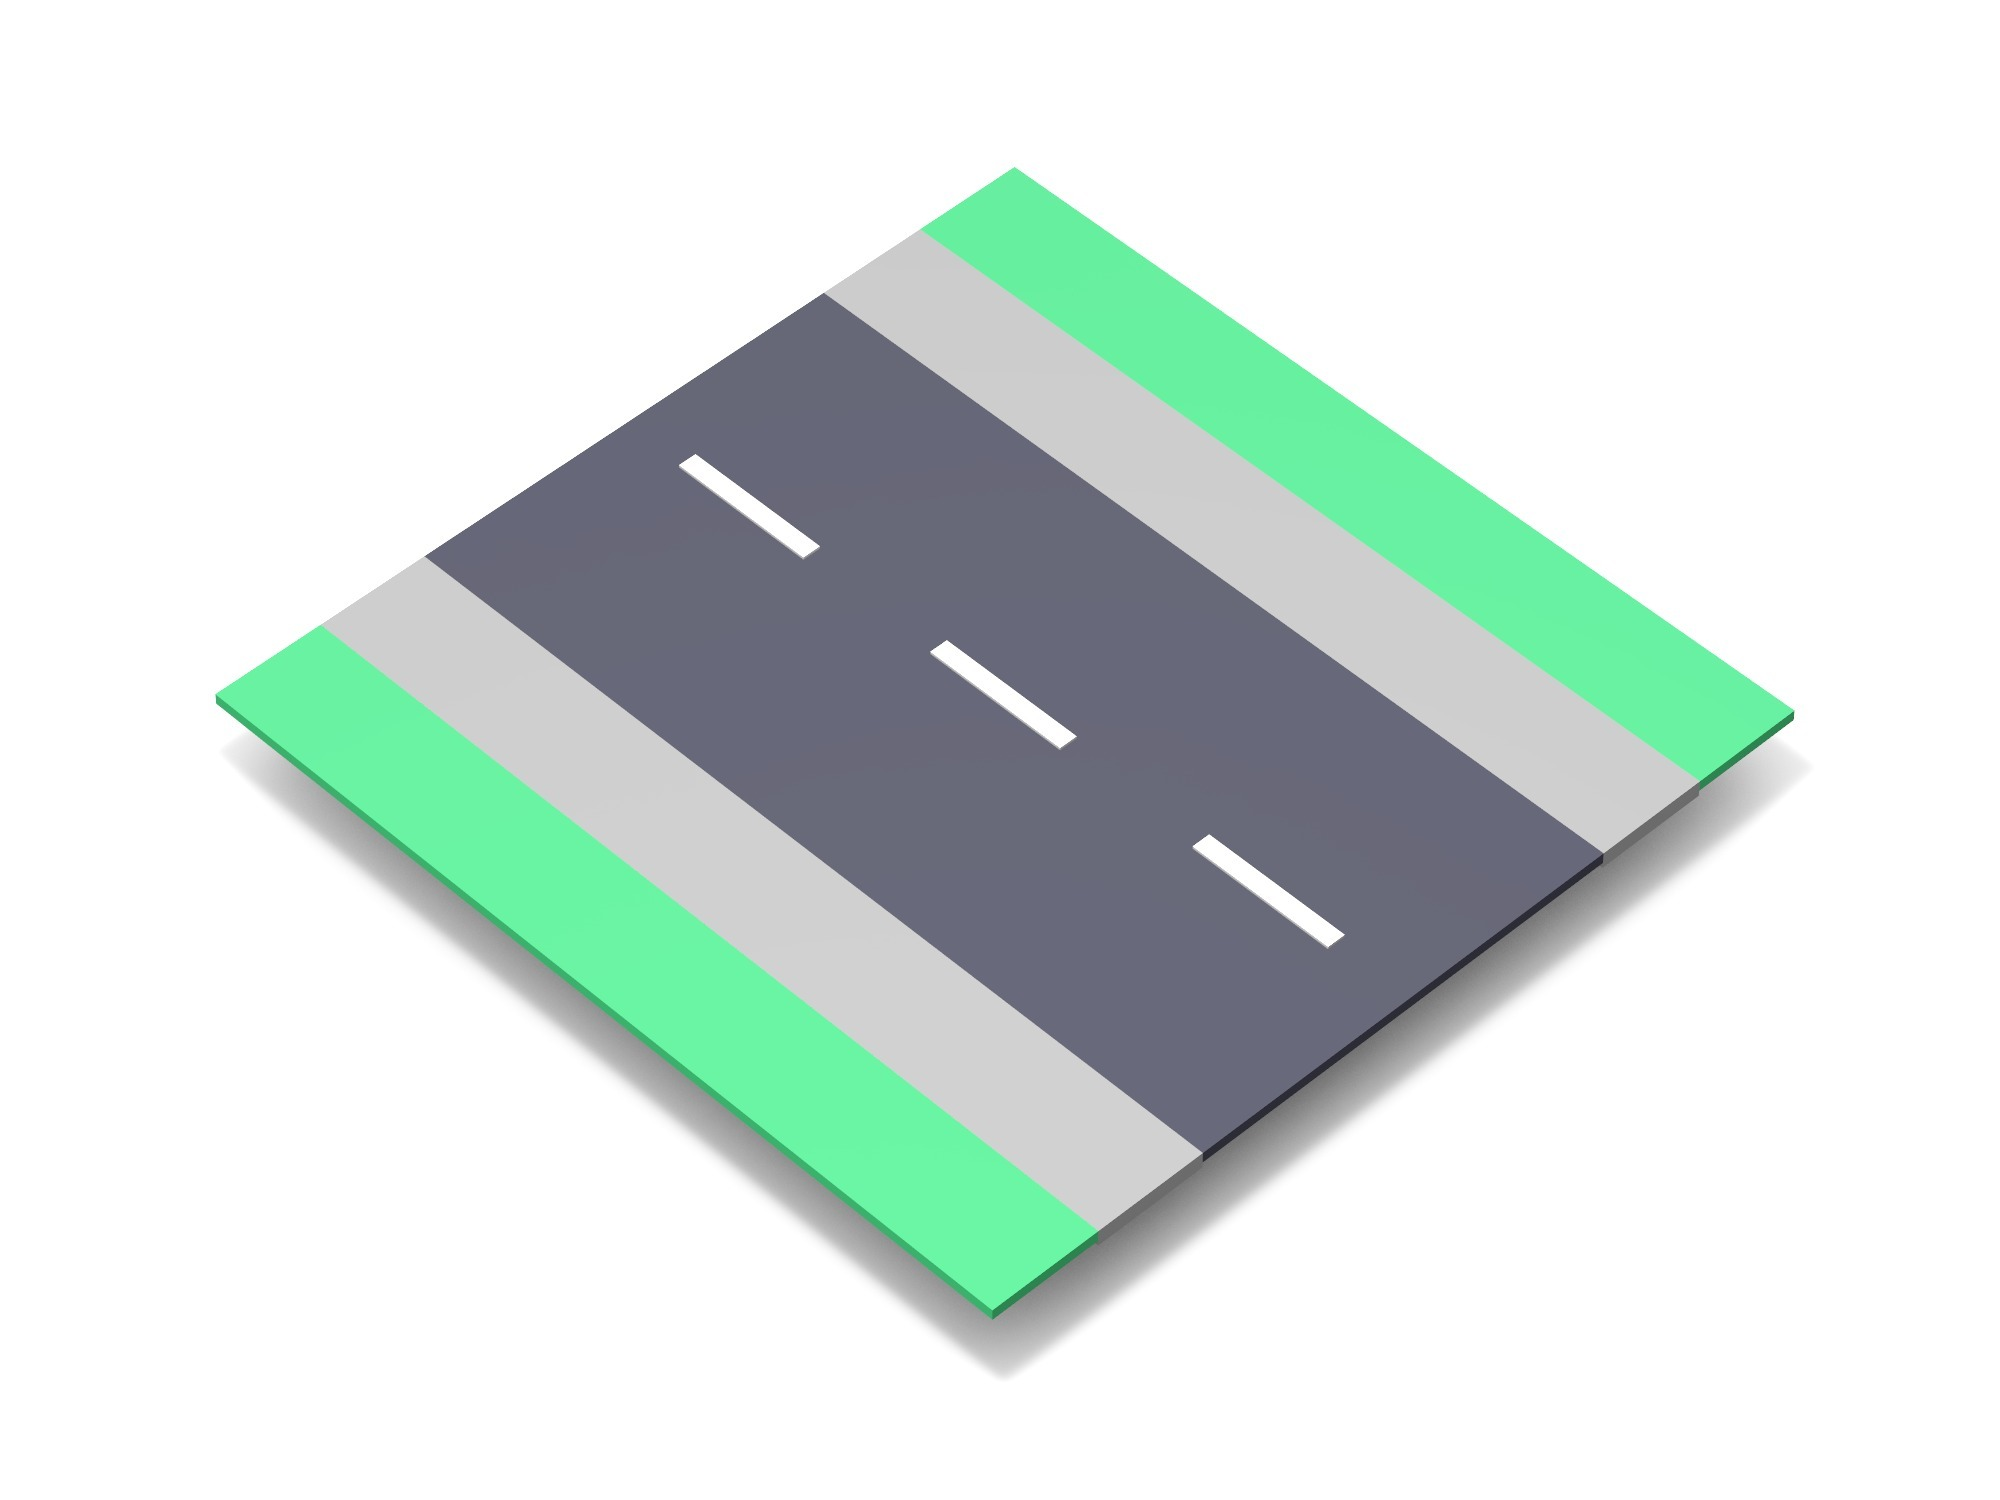 Road block - 3D design by Vectary assets on Nov 9, 2018